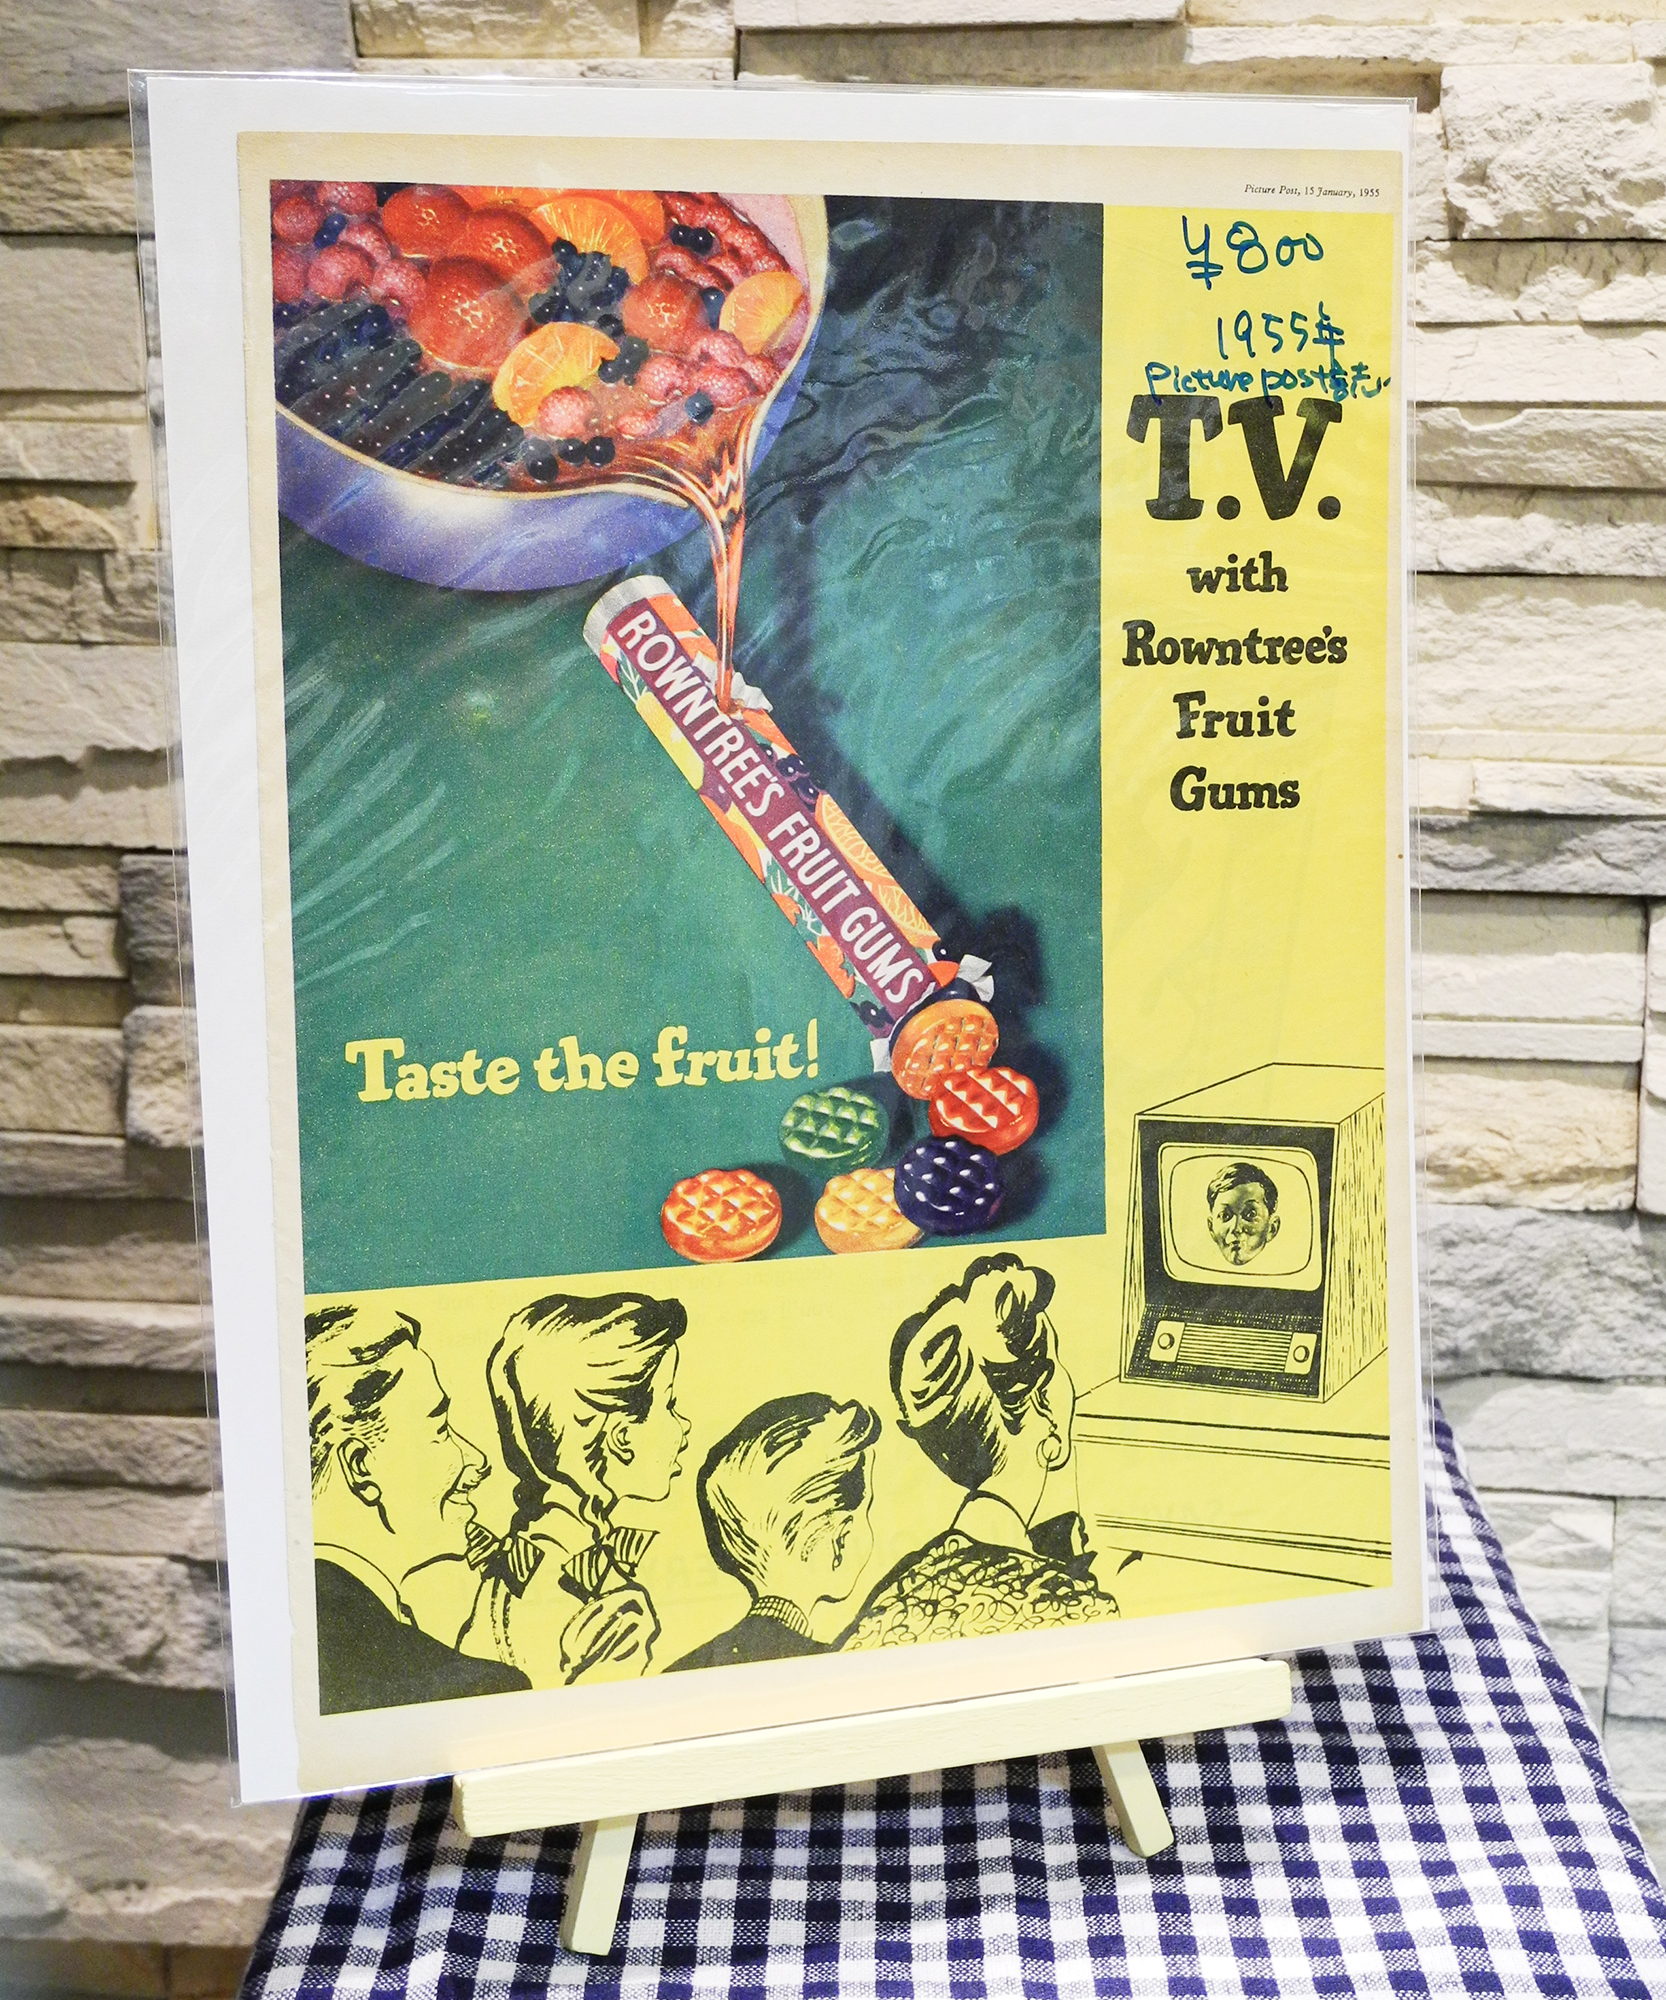 【Vintage品】雑誌切り抜き広告 ROWNTREE'S FRUIT GUMS 1955年 イギリス Picure Post誌 /0234o